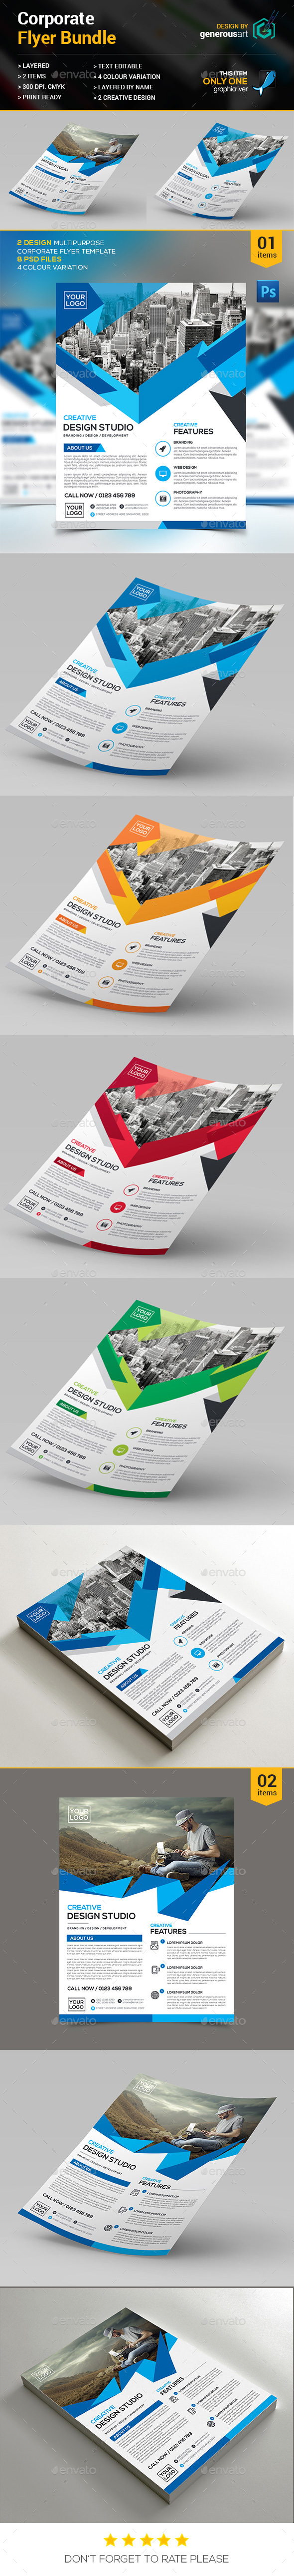 Corporate Flyer Bundle_1 - Commerce Flyers